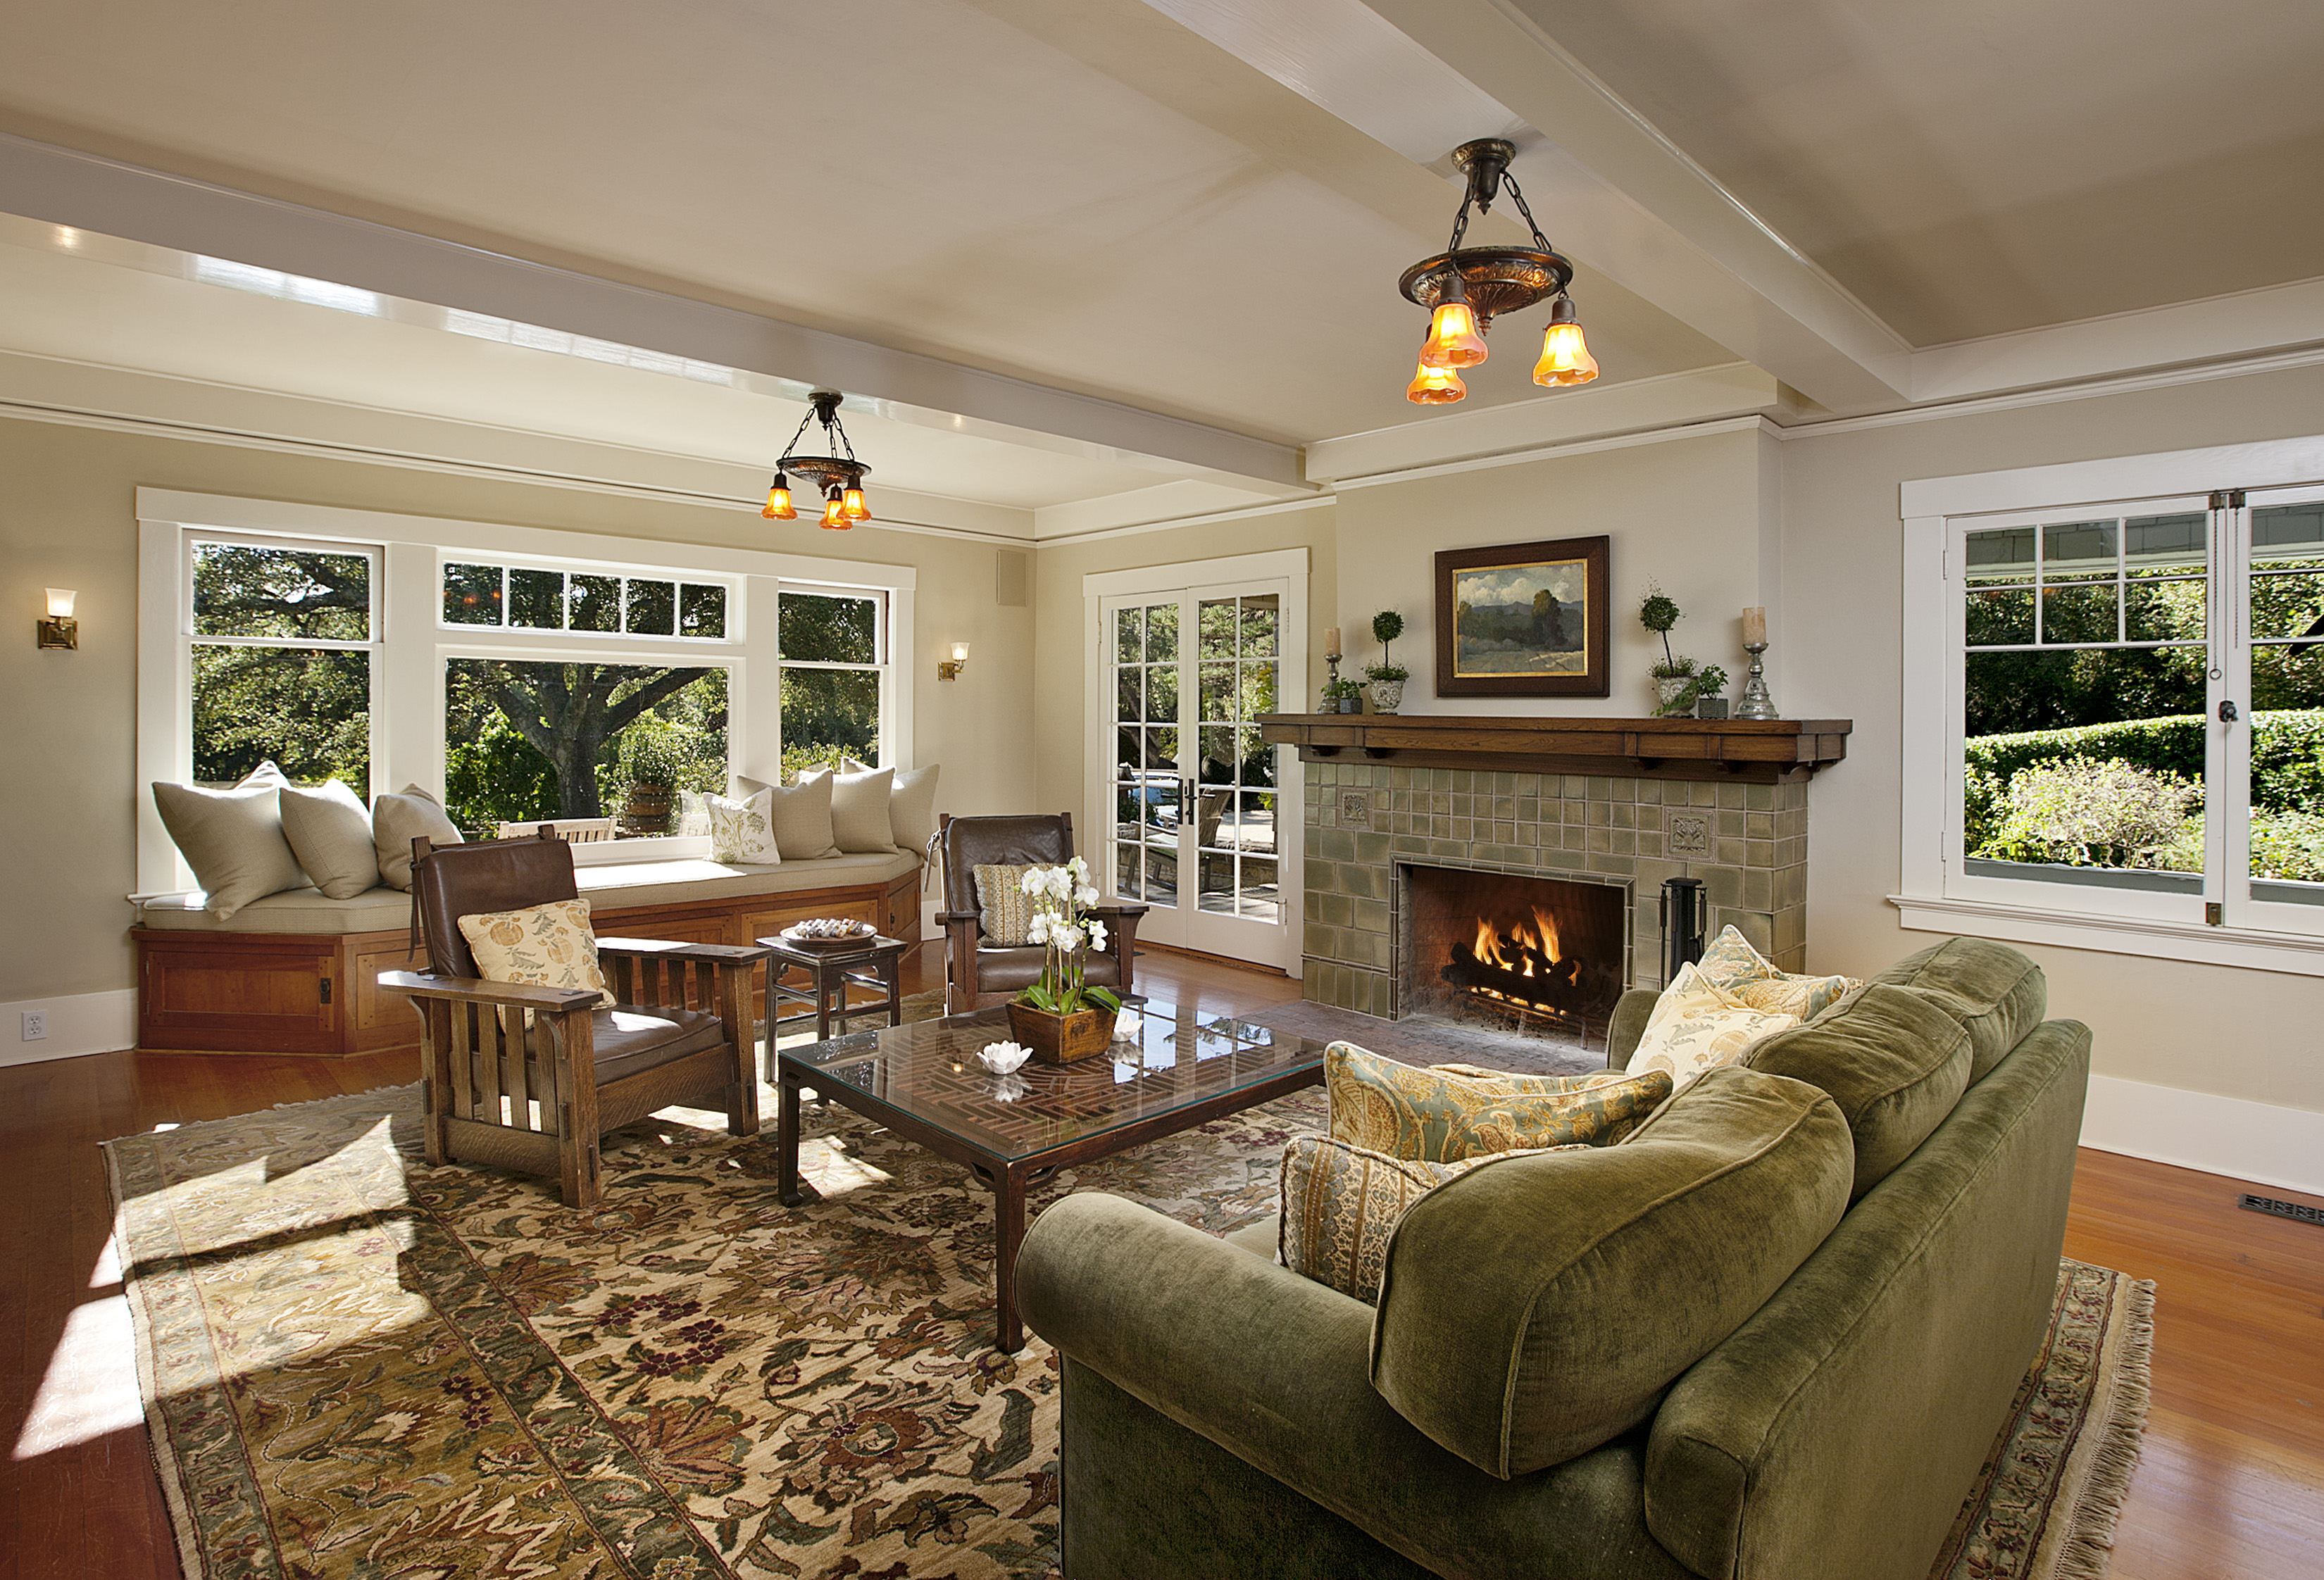 Popular home styles for 2012 montecito real estate for House design styles